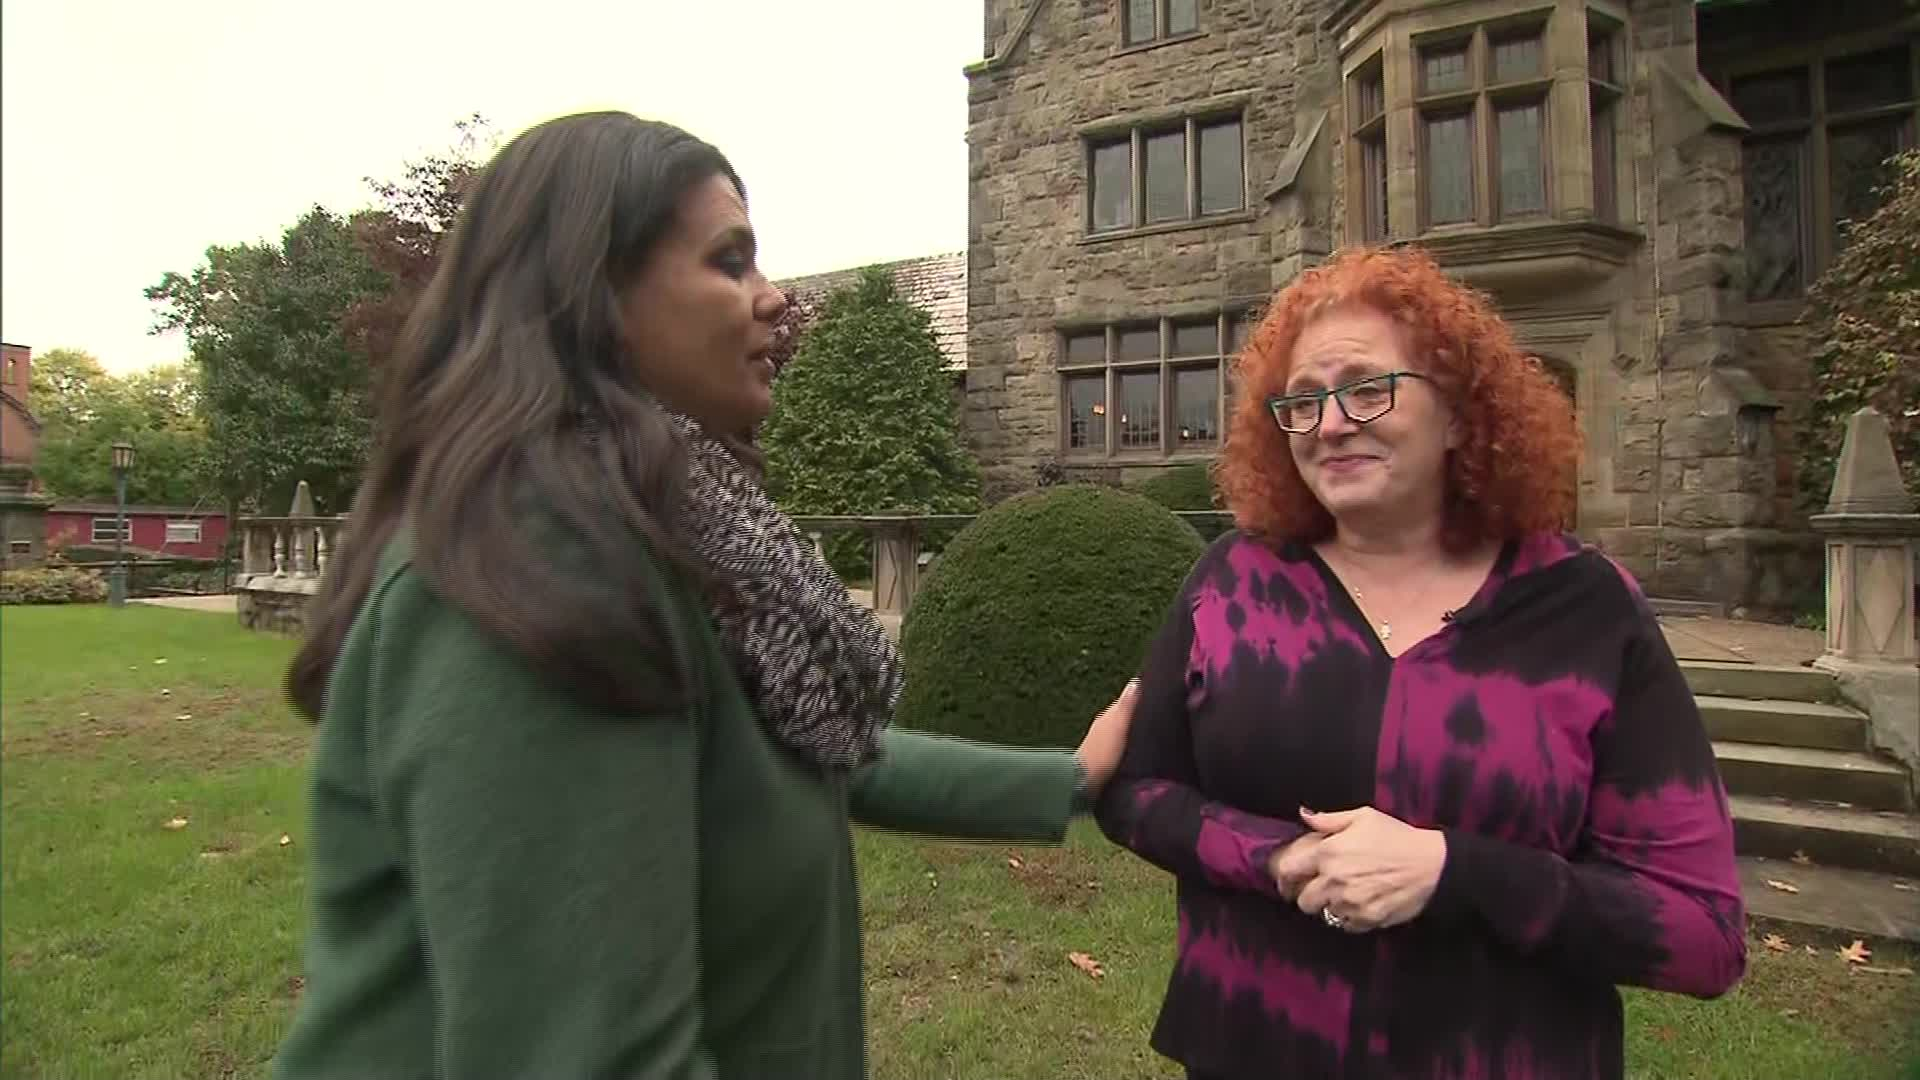 Suzan Hauptman (right) spoke to CNN's Sara Sidner about her friends who were killed in the shooting.